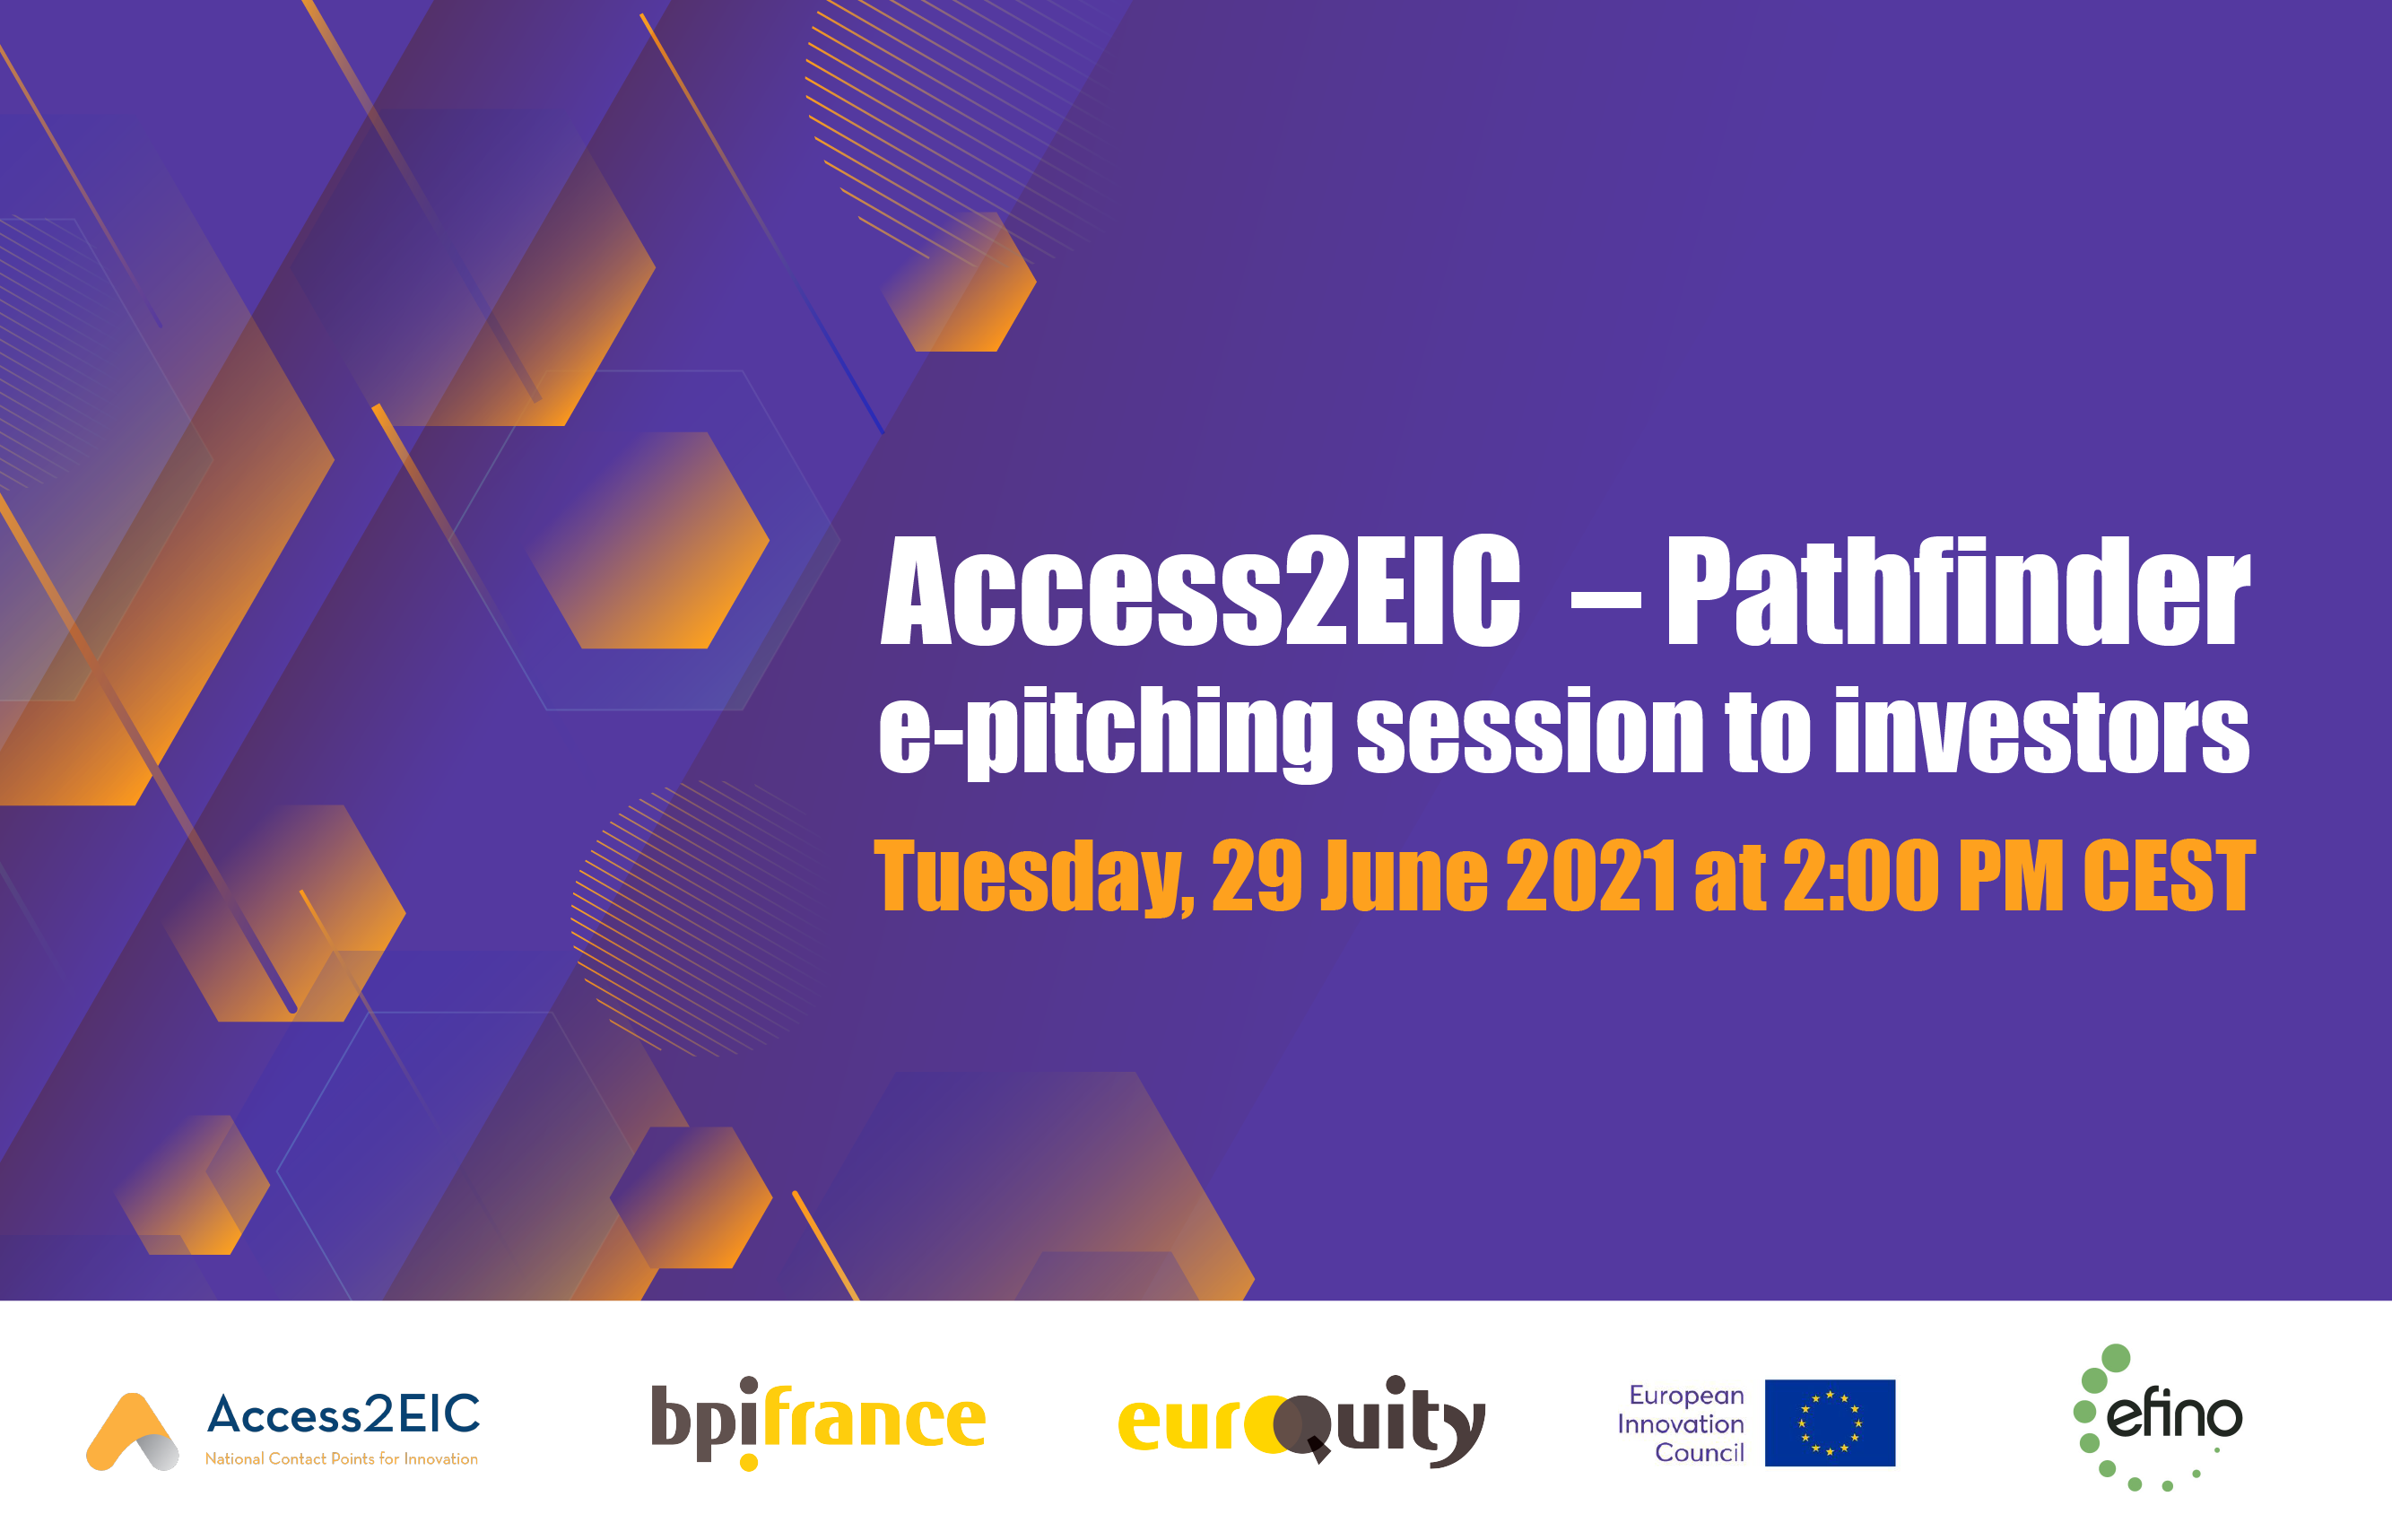 Introducing four Pathfinder companies to investors next June 29th at 2 pm CEST